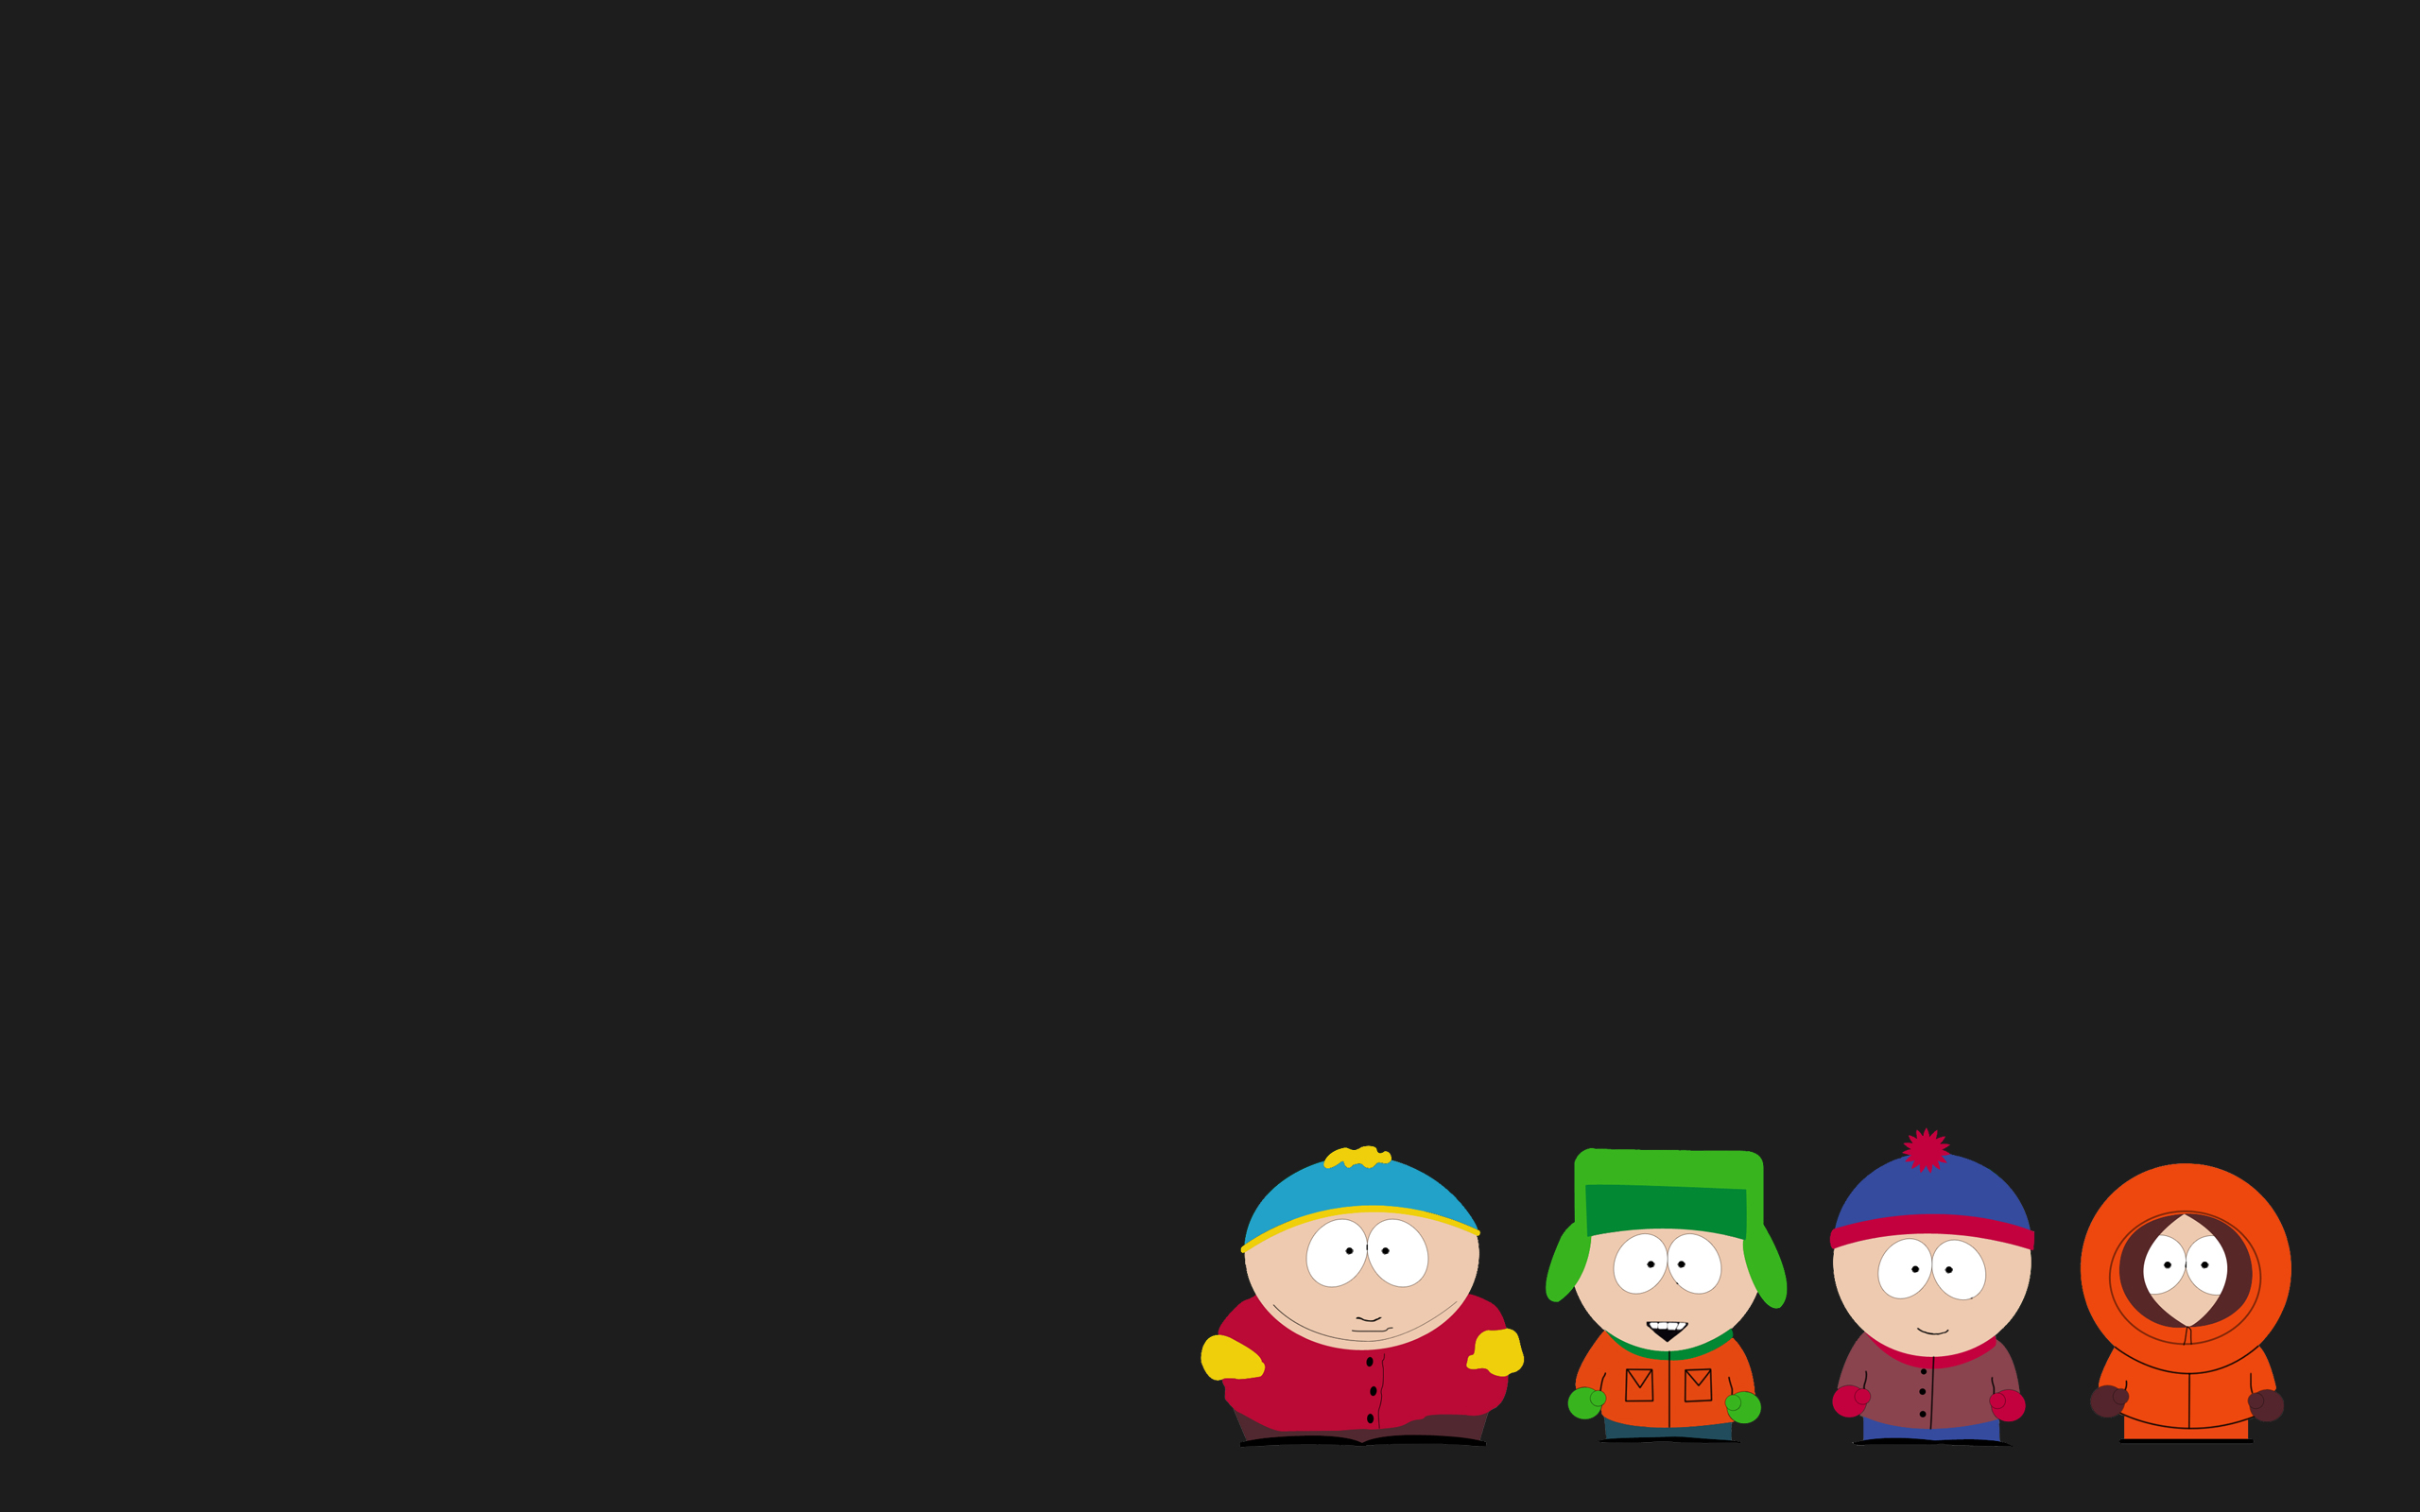 Free Download Pics Photos Southpark Wallpaper South Park Mobile